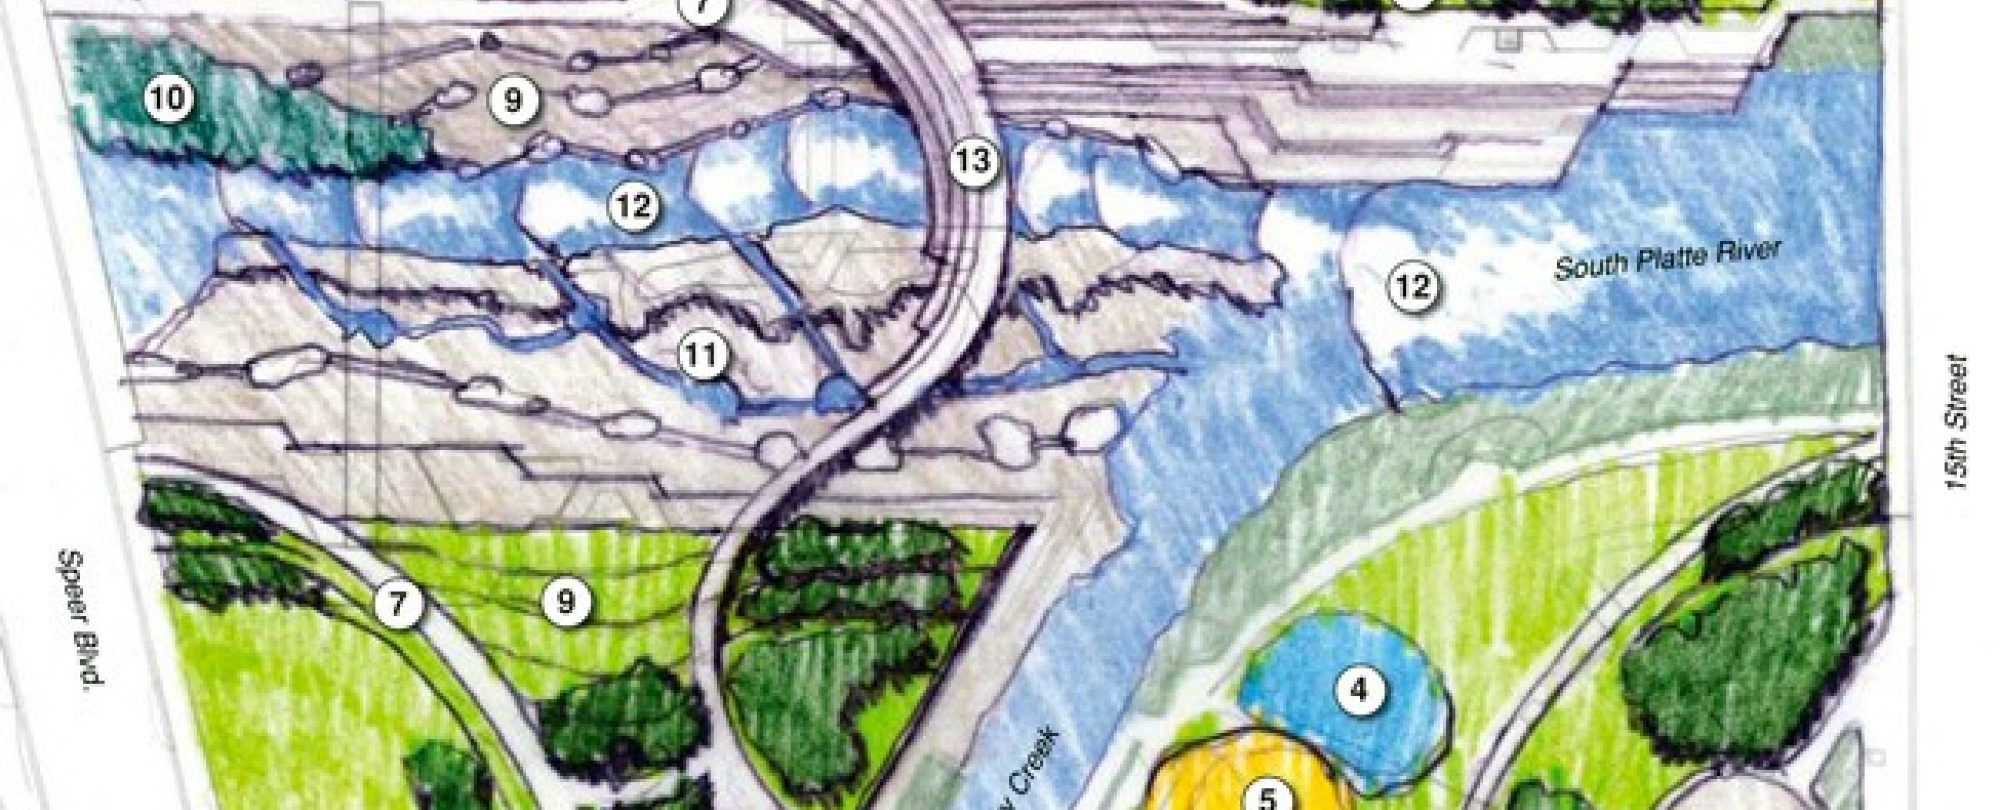 Confluence Plan rendering